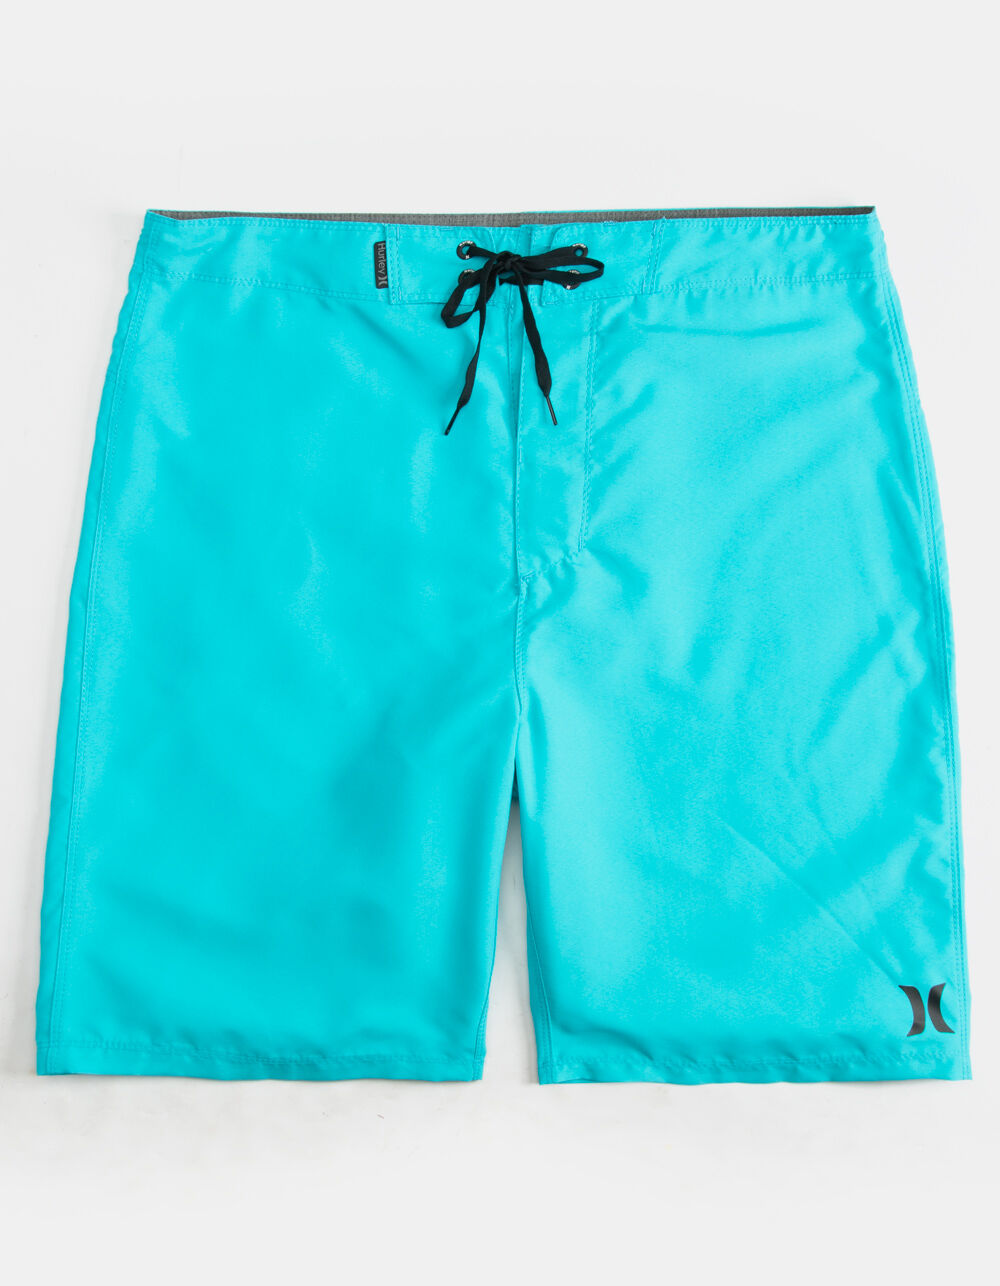 HURLEY One And Only Teal Blue Boardshorts